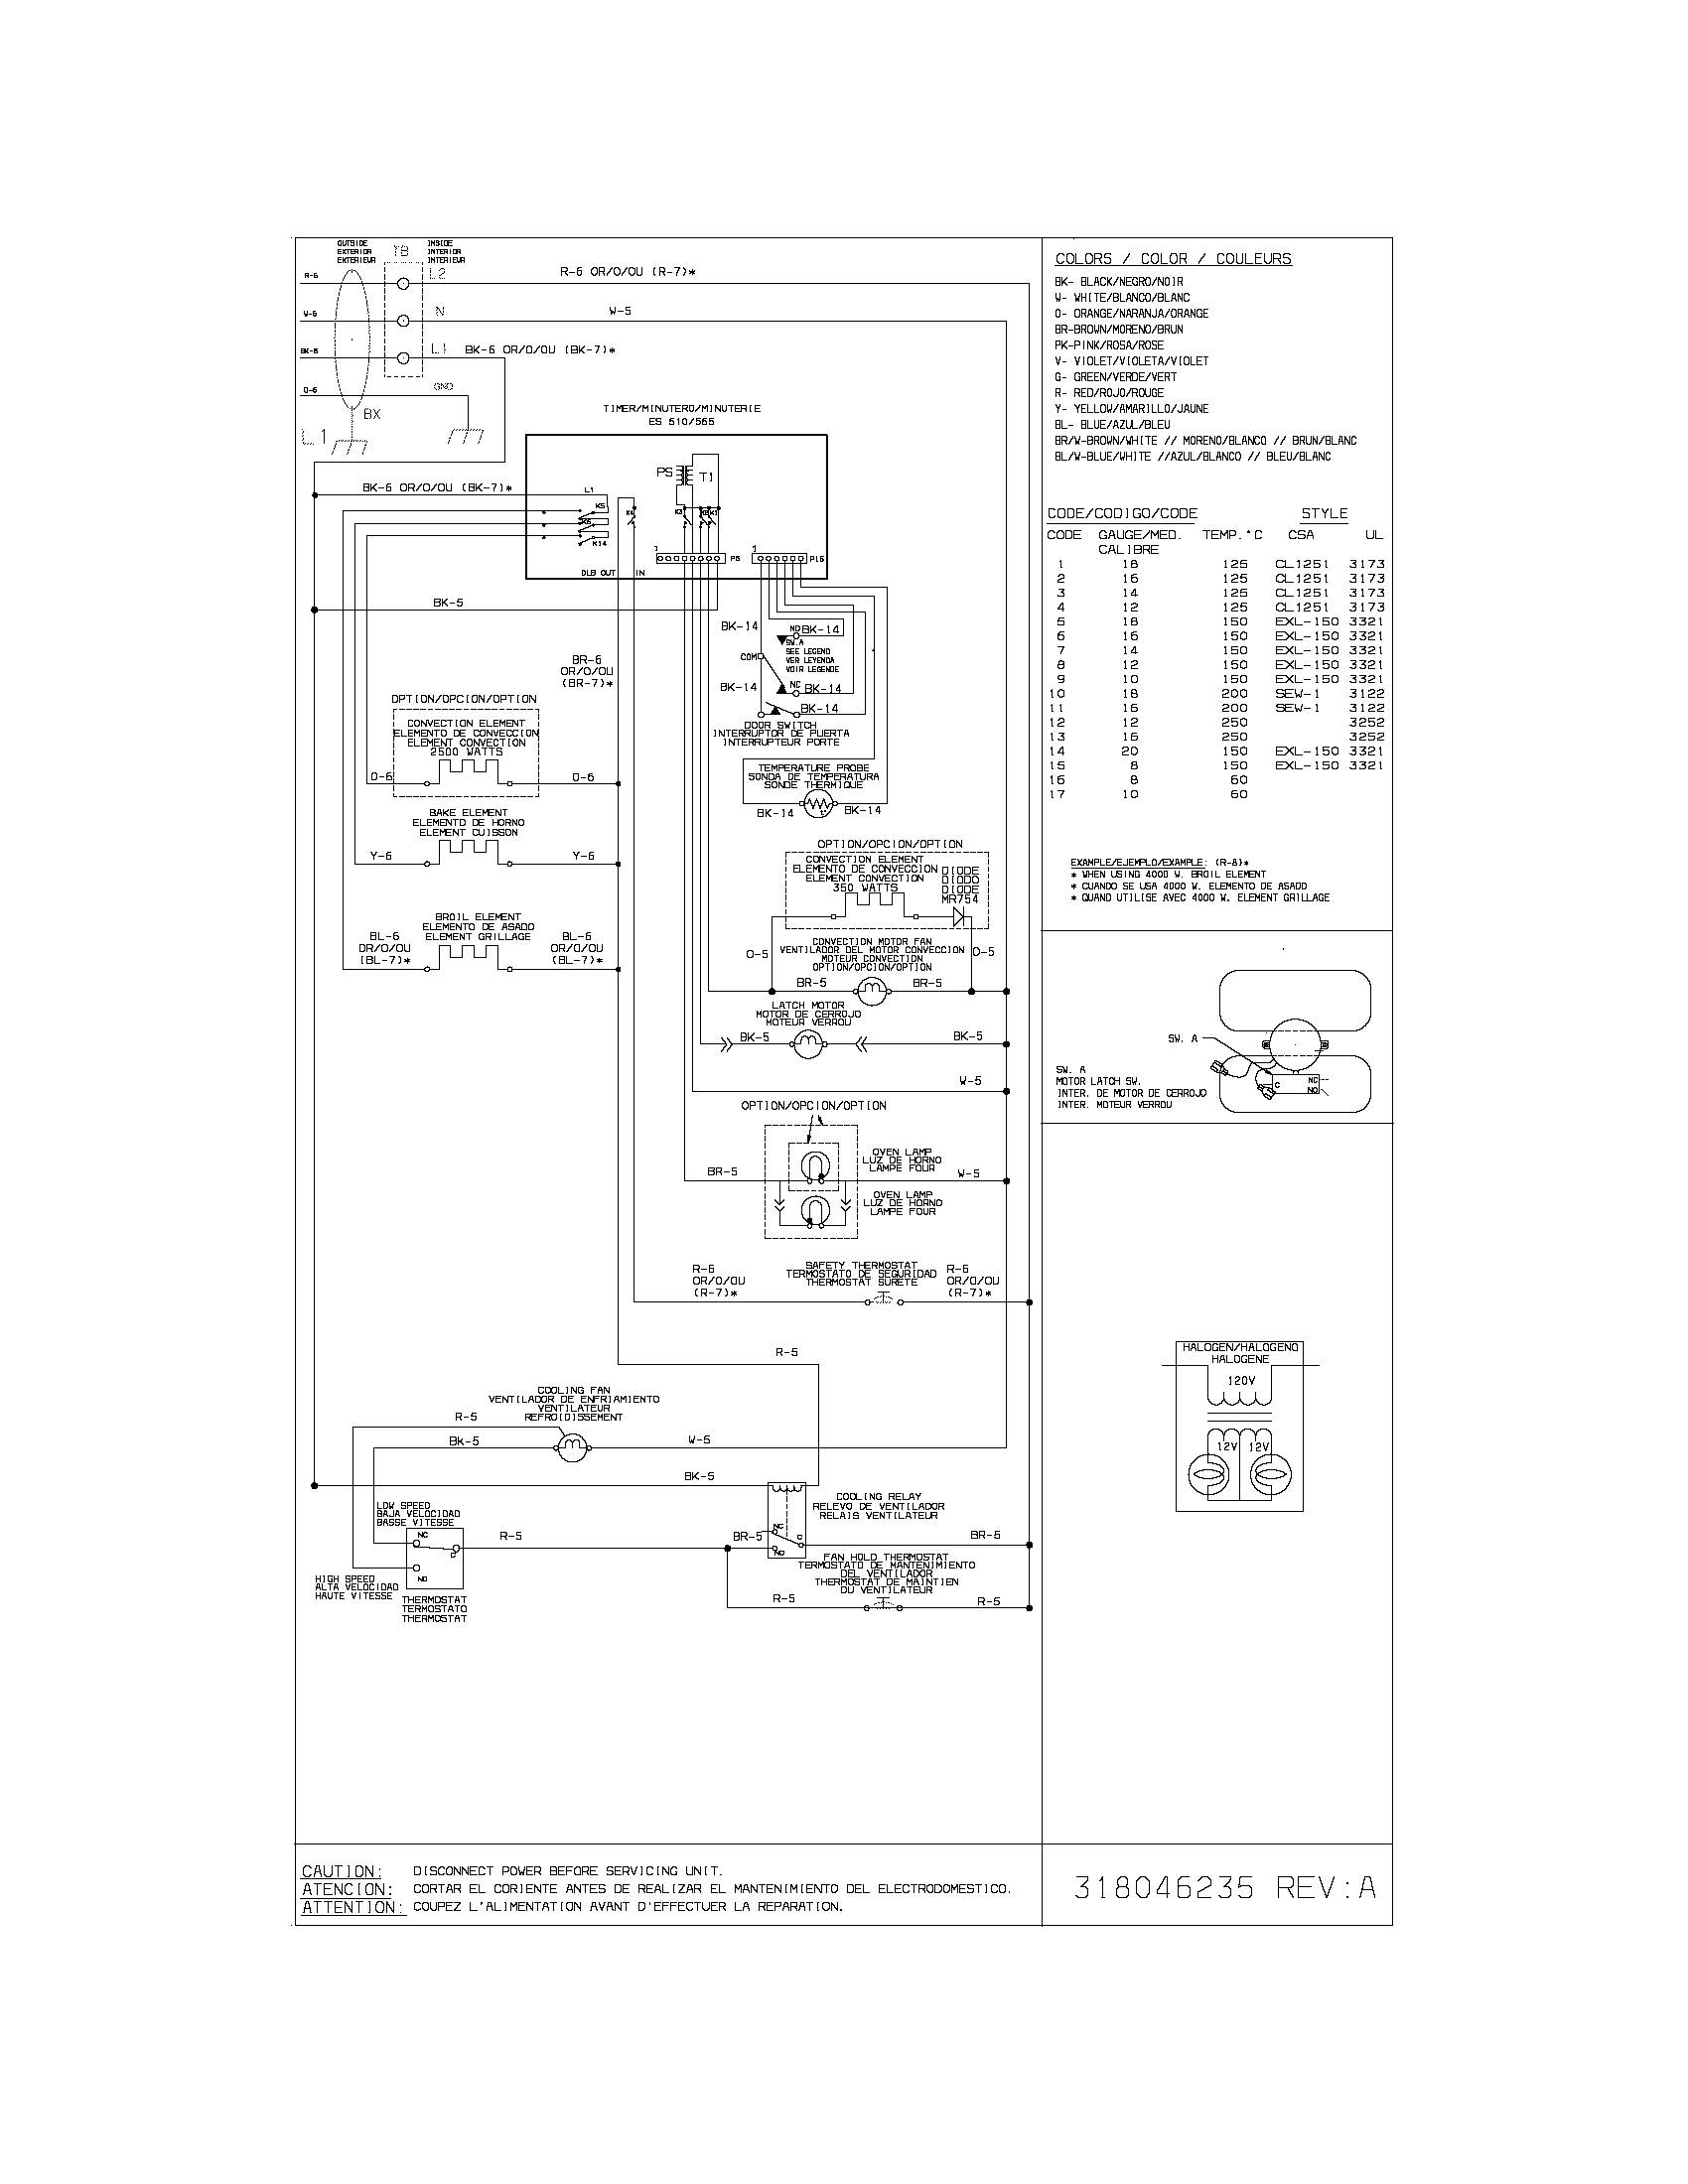 Frigidaire Wiring Diagram: Frigidaire CPEB30S8CC2 Wall Oven Timer - Stove Clocks and ,Design